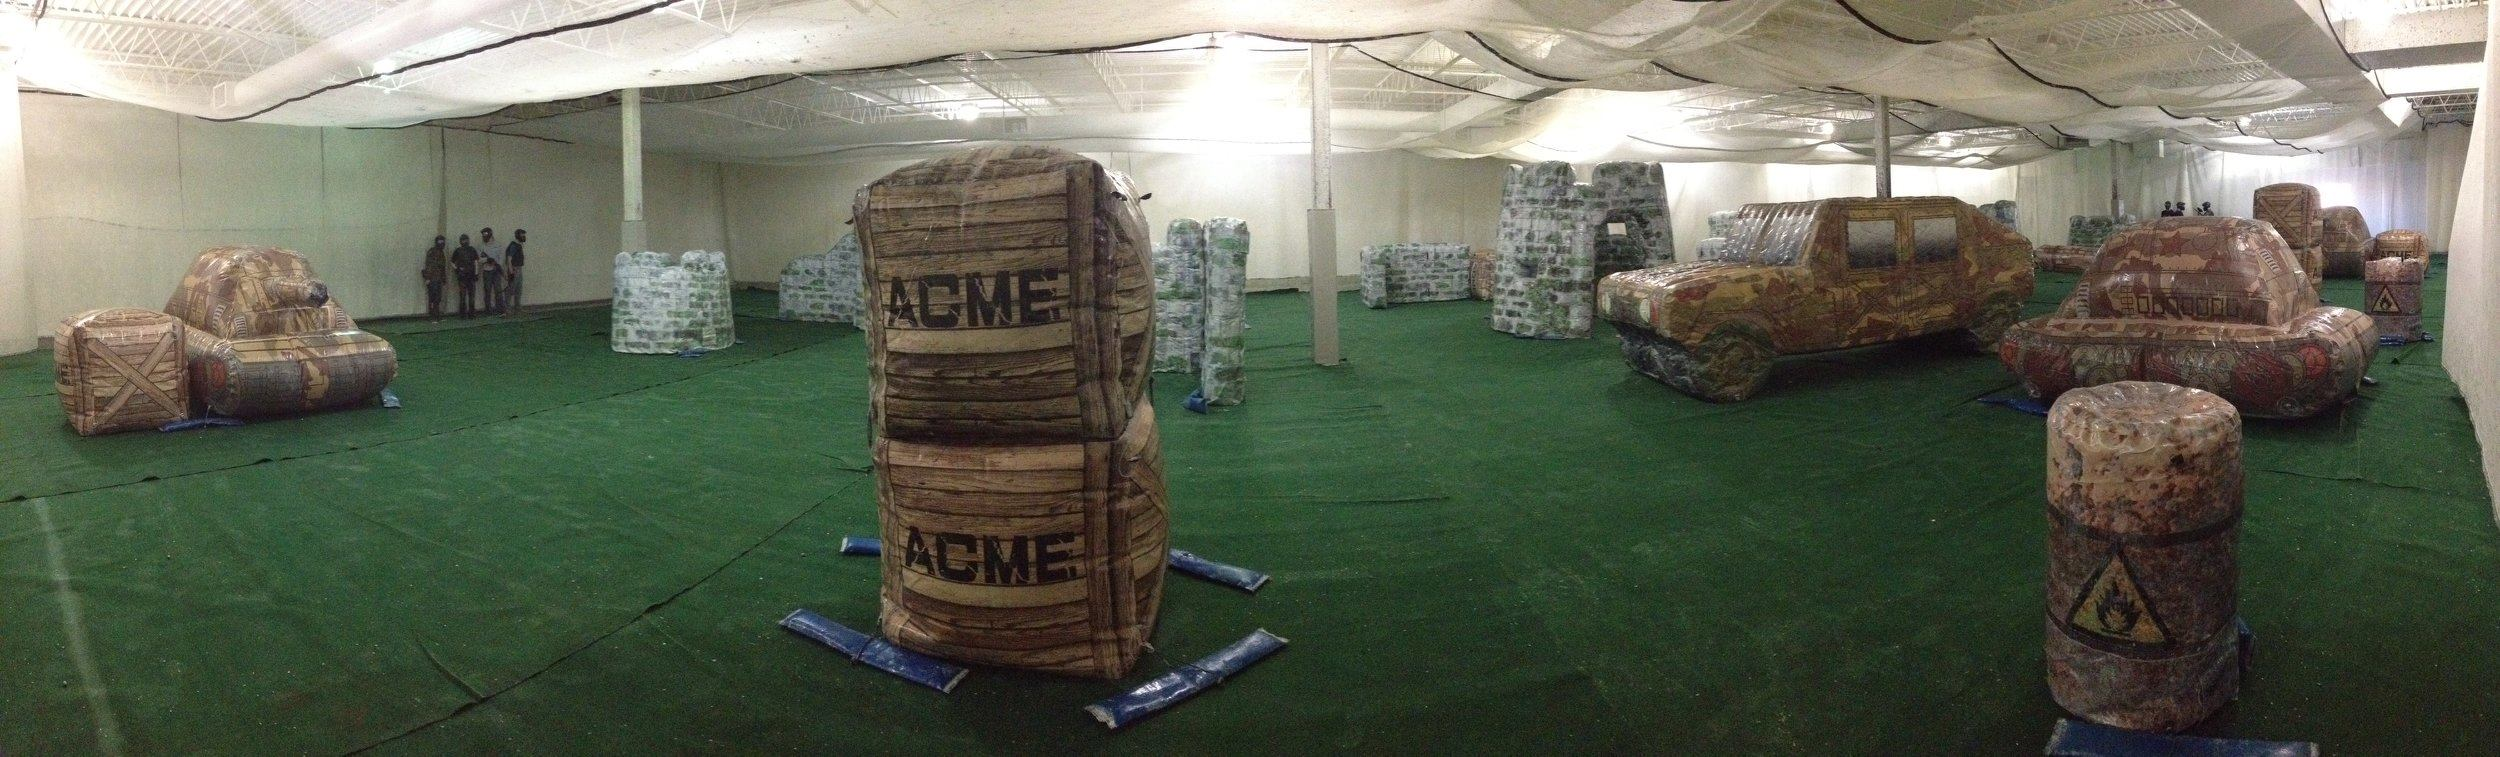 Splatball Indoor Paintball